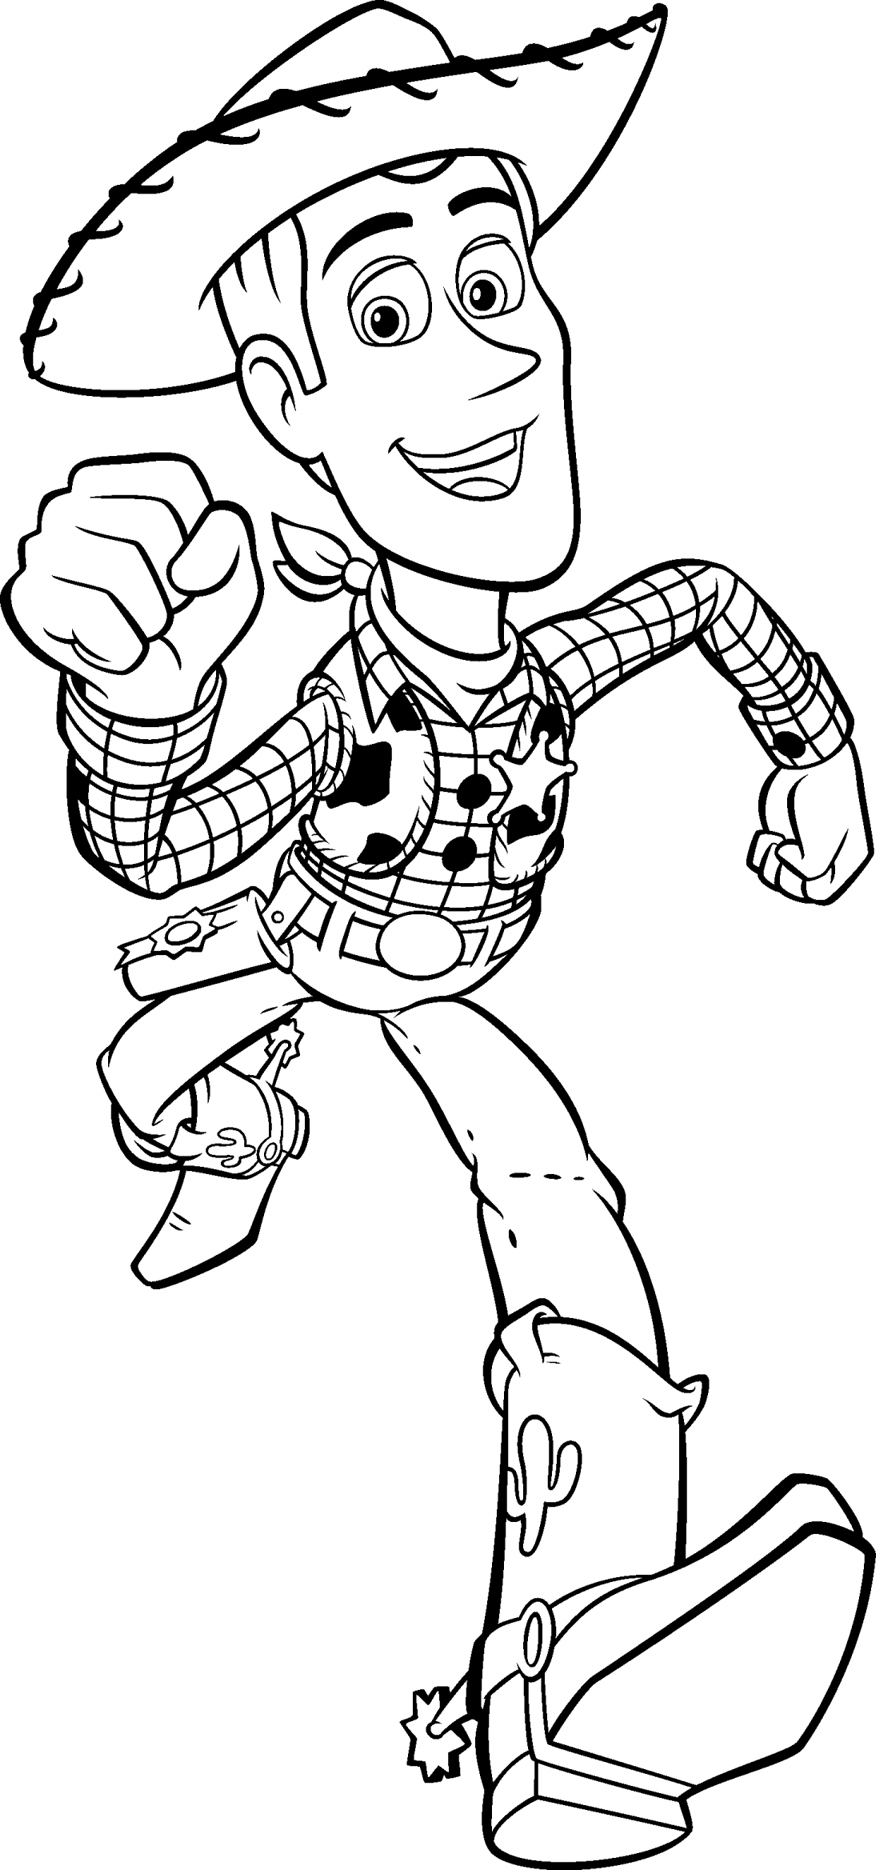 Free printable toy story coloring pages for kids for Free disney coloring pages to print